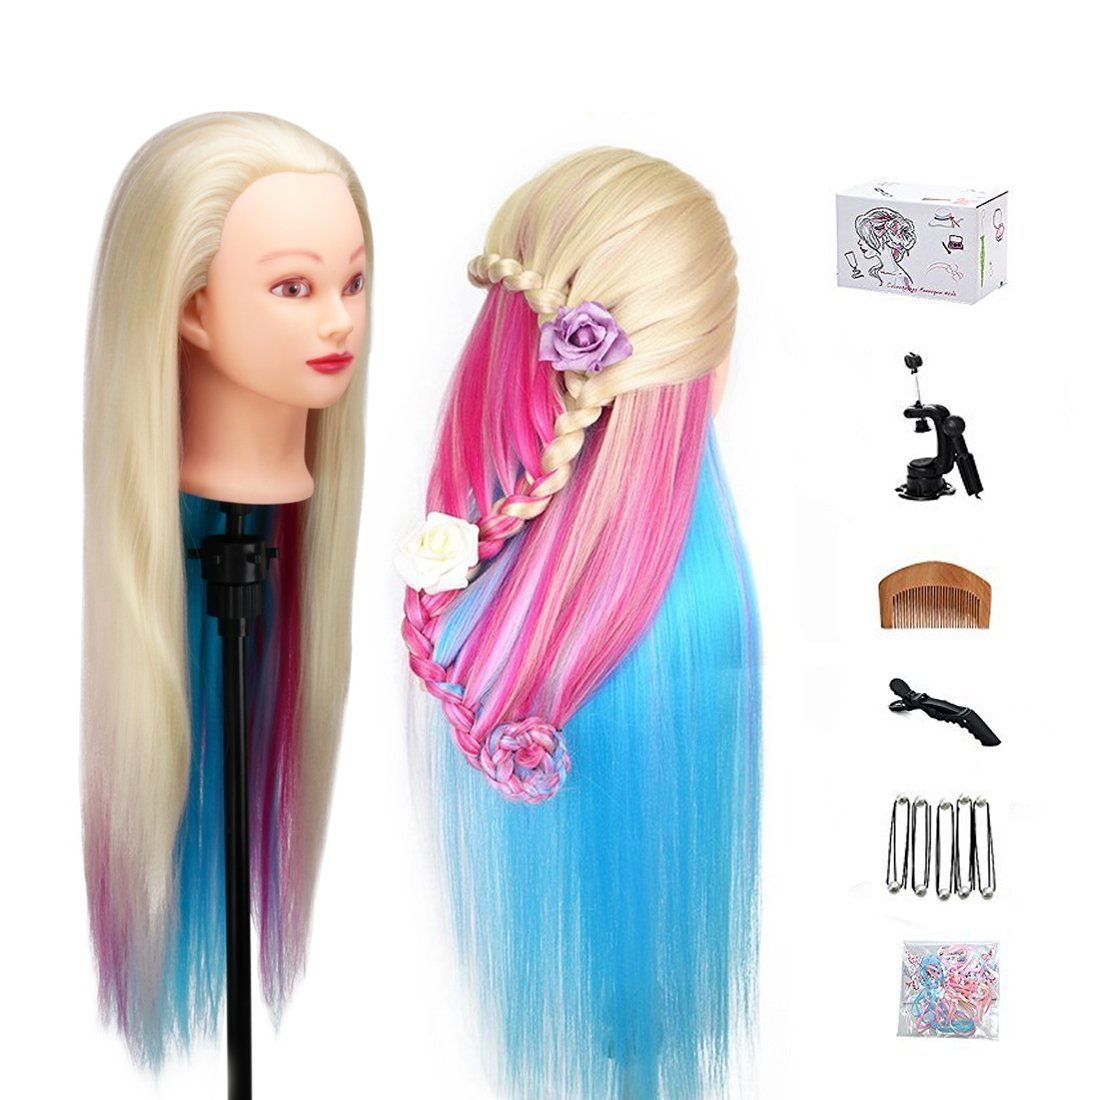 MYSWEETY 29 Inch Colorful Hair Mannequin Head Hairdressing Practice Training Doll Heads Cosmetology Hair Styling Mannequins Heads with Clamp + Practice Tools by MYSWEETY (Image #1)